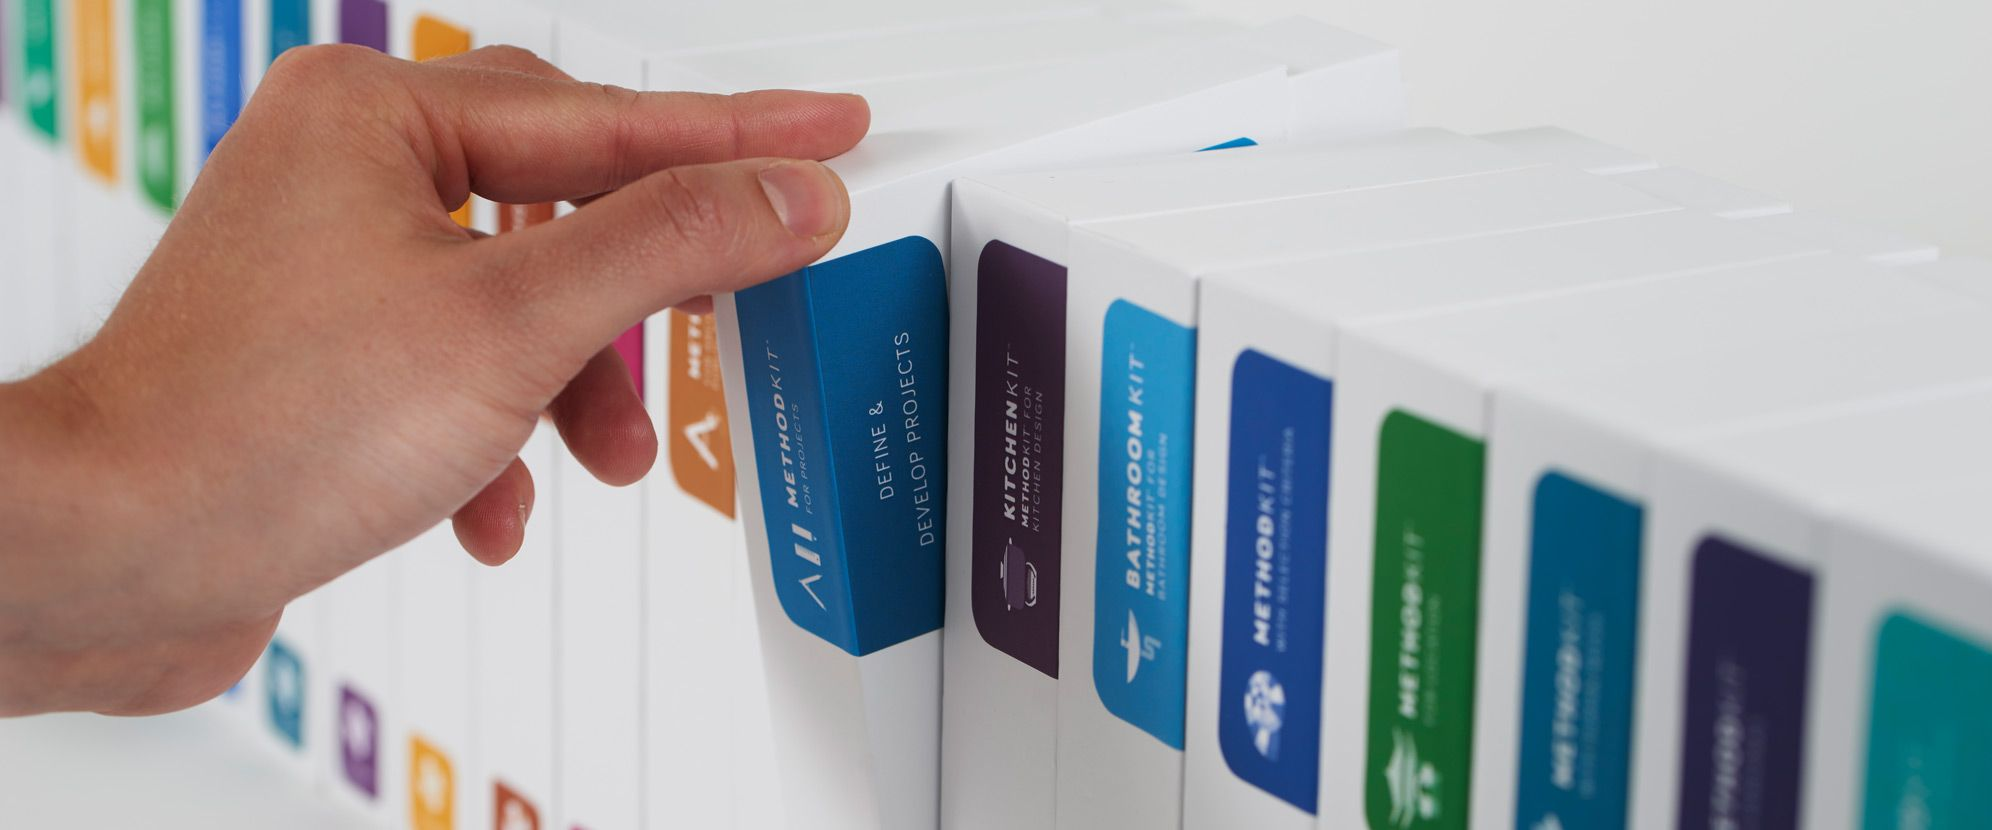 MethodKit are analogue decks of cards that facilitate meetings and help people to develop projects.